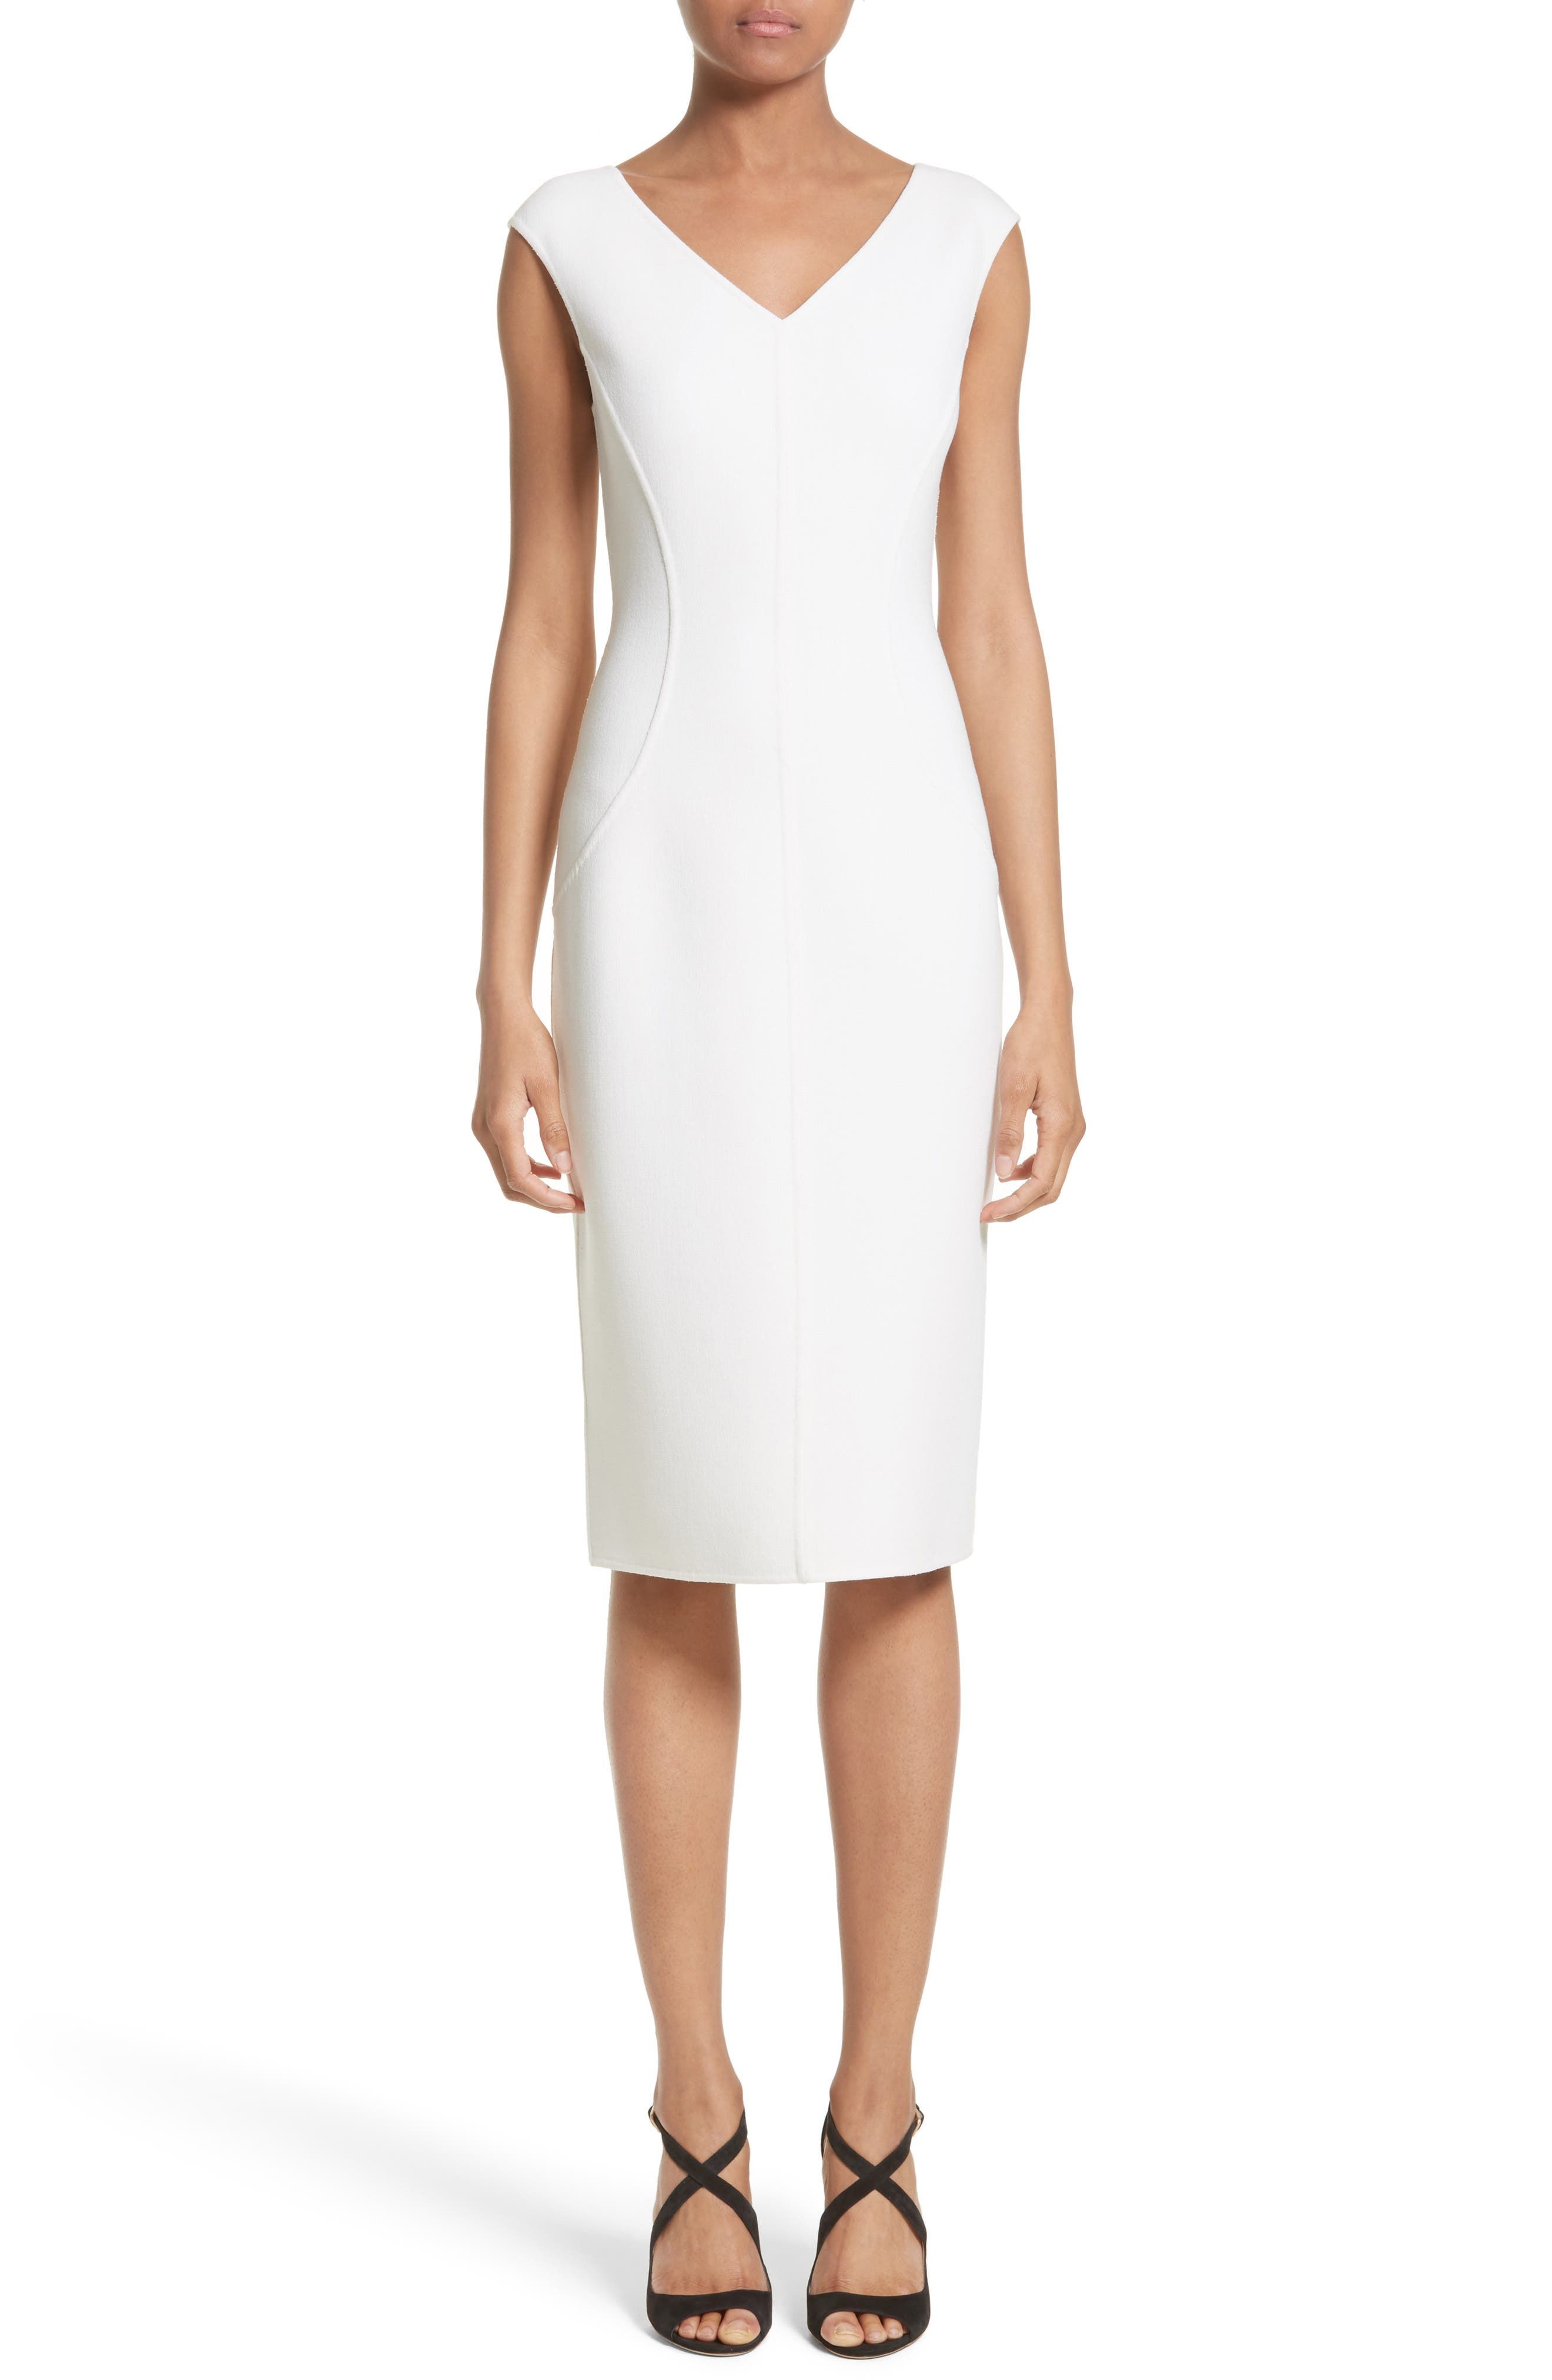 Michael Kors Stretch Bouclé Sheath Dress